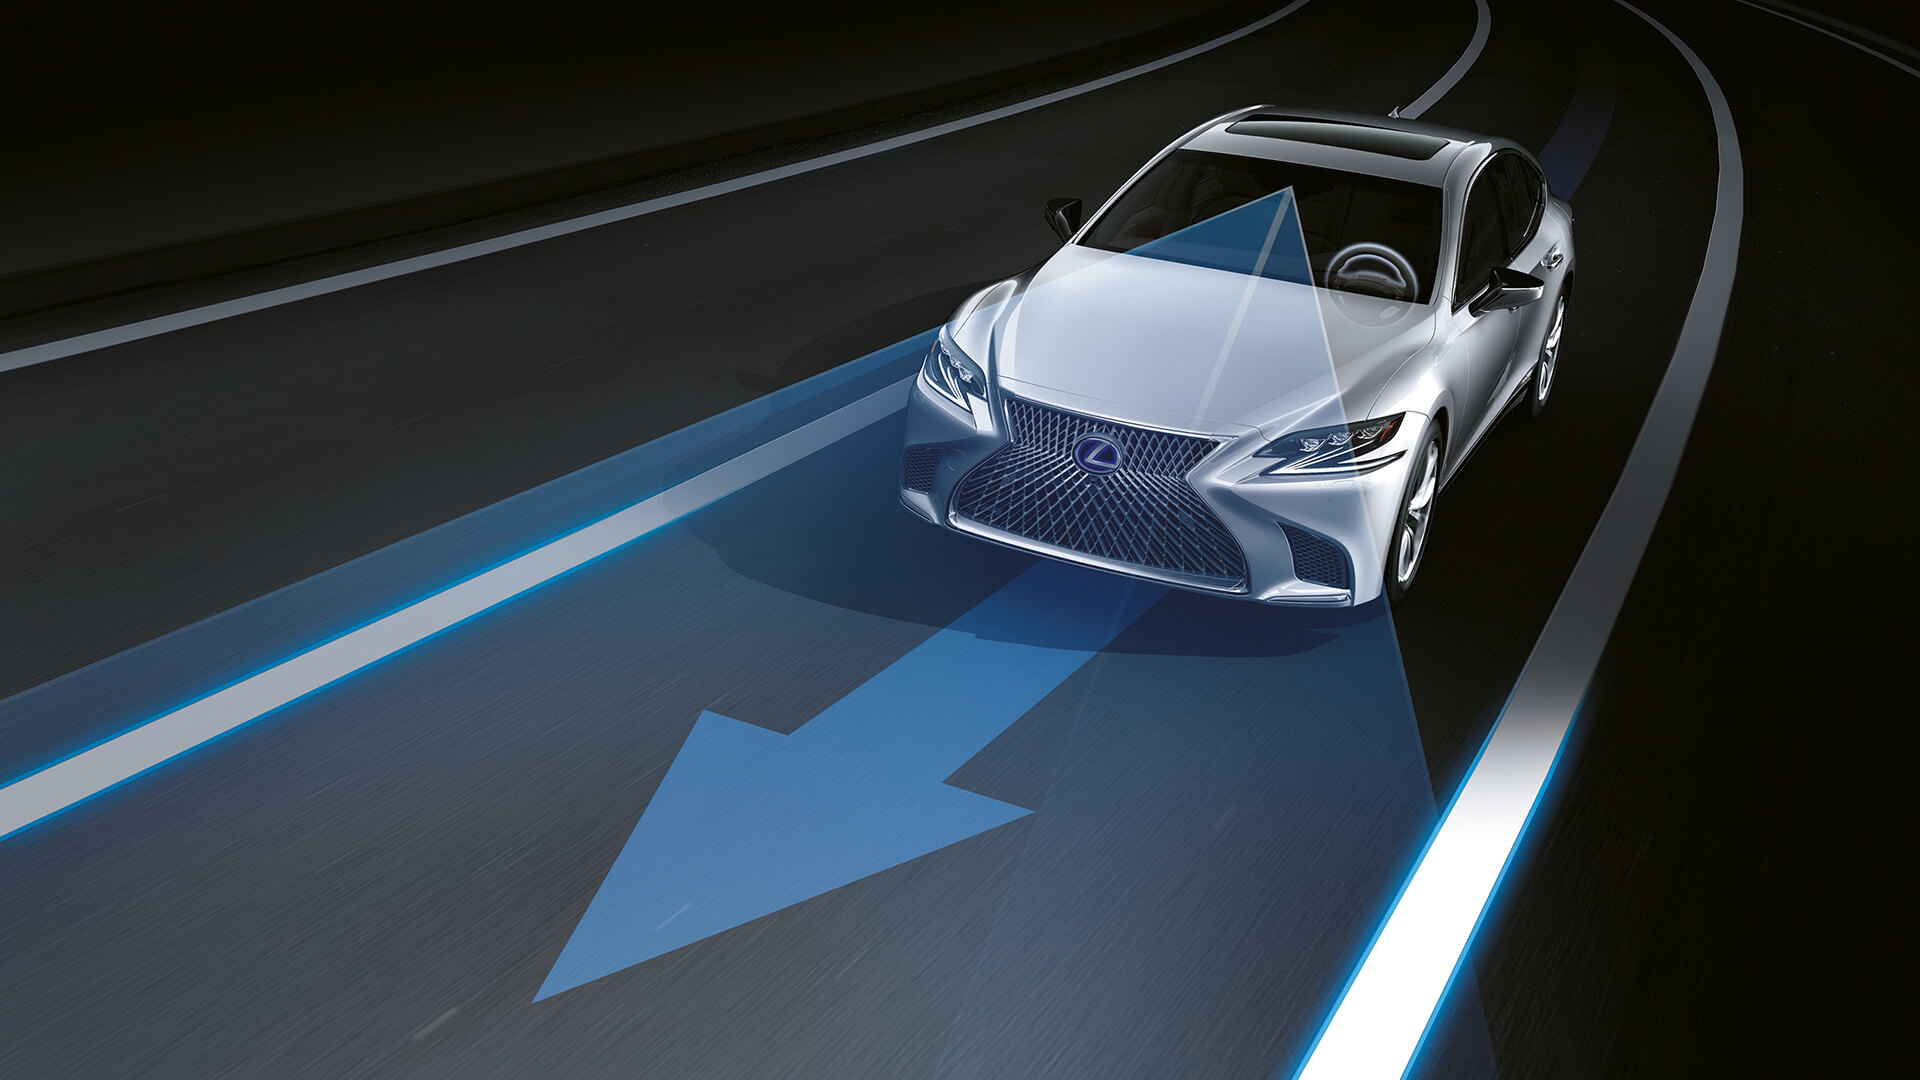 2018 lexus ls features advanced lane keeping assist